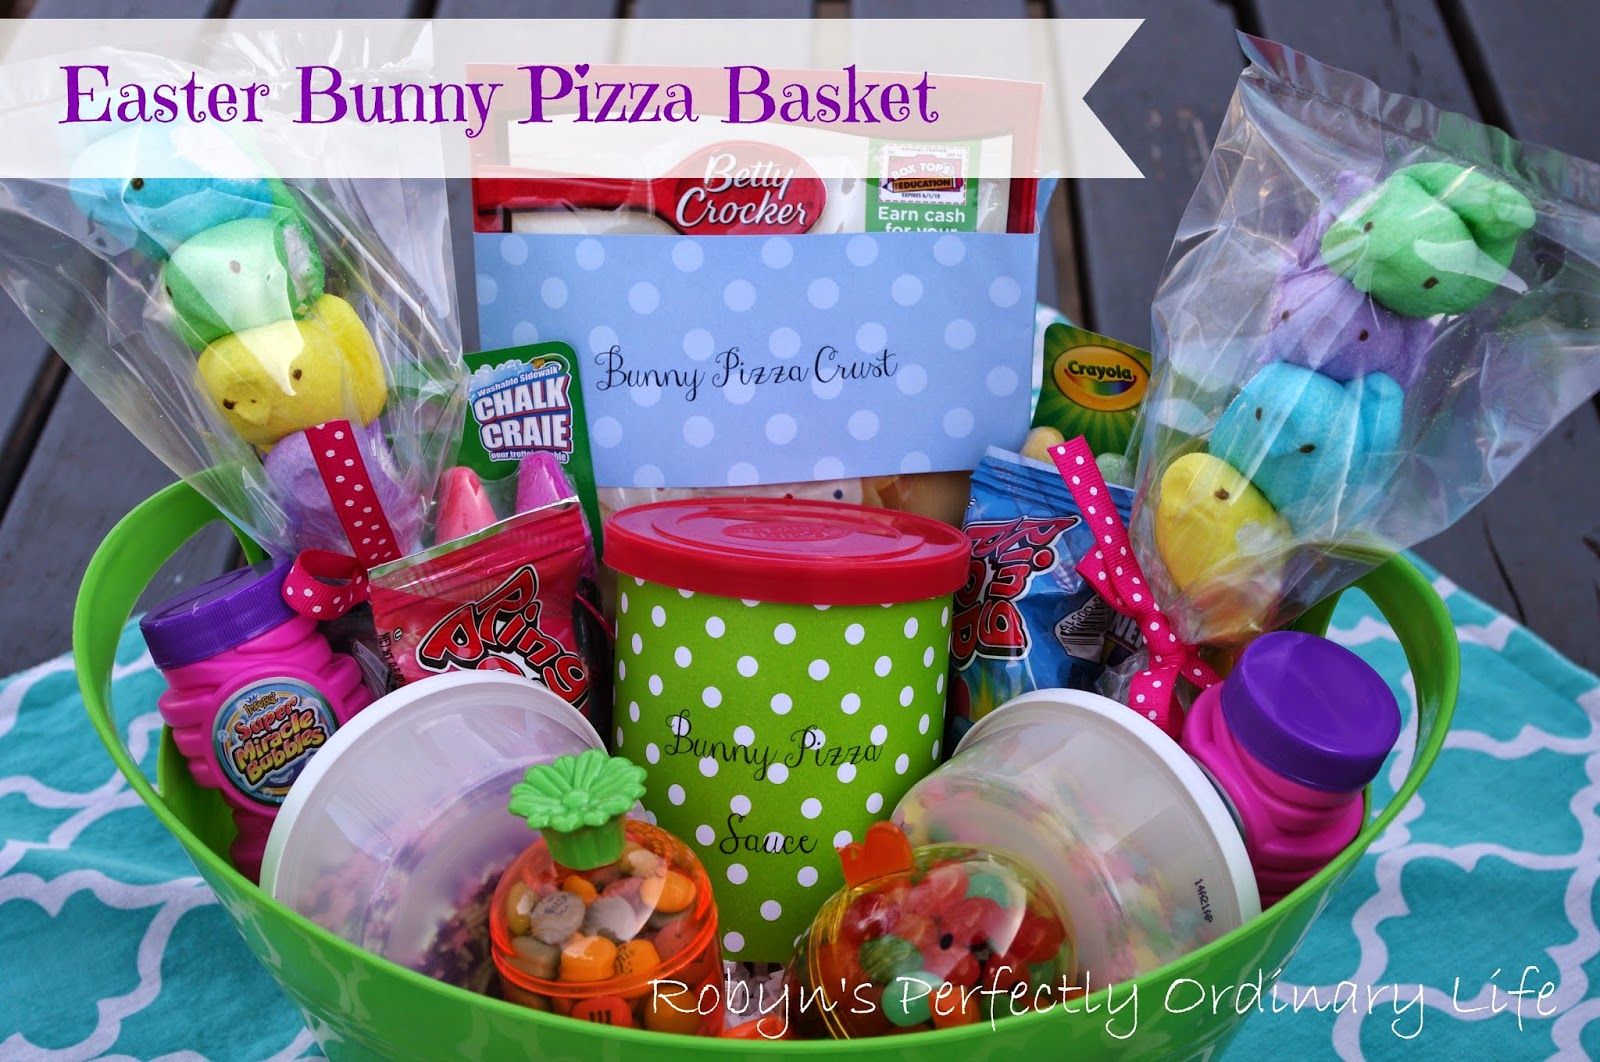 robyn's perfectly ordinary life easter bunny cookie pizza basket, Baby shower